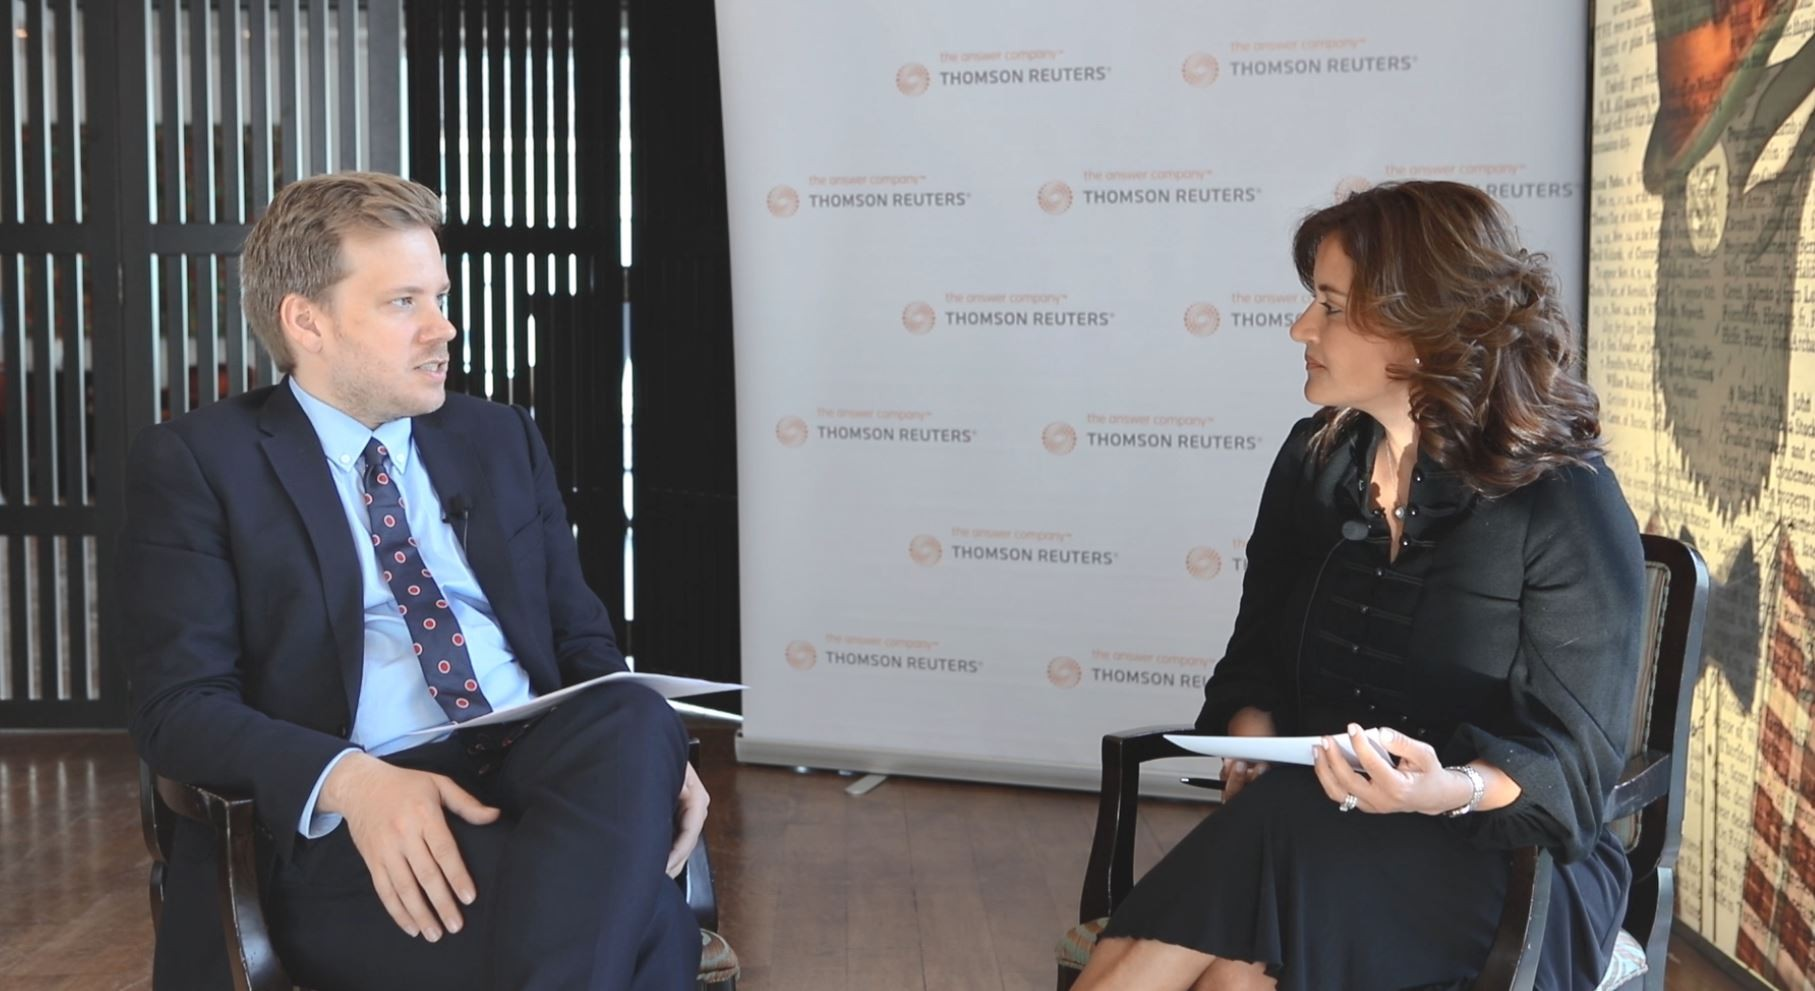 Thomson Reuters MENA: Hot Seat - Episode 2 International Tax and Trade: 2020 and Beyond